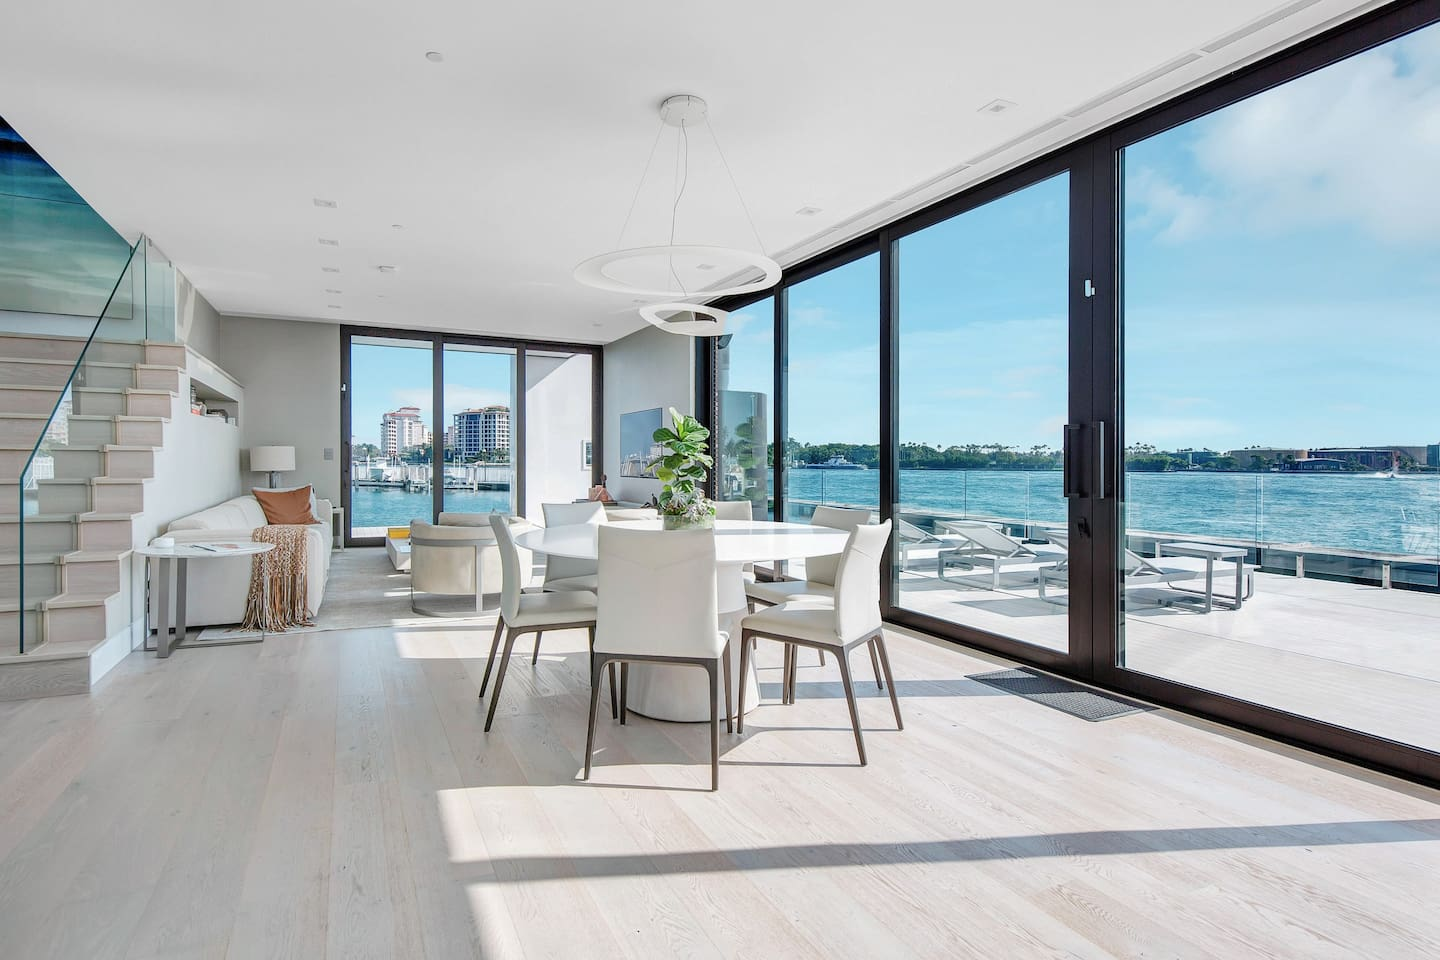 Spacious dining area with a view of your choice